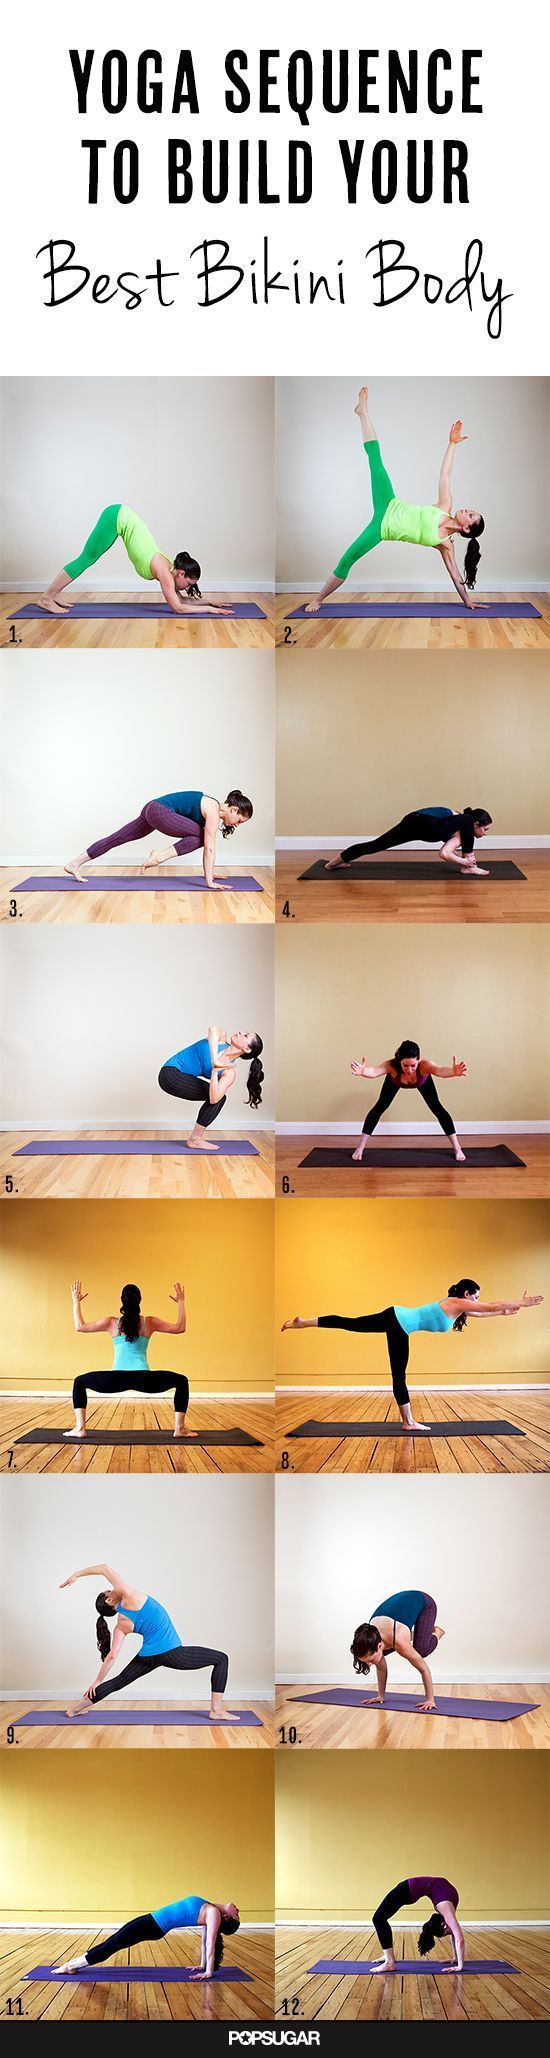 Total Body Sequence: Quarter Dog, Balancing Star, Knee Up Plank, Burning Low Lunge, Side Fierce, Extended Standing Straddle, Goddess, Warrior 3, Crescent Moon, Crow, Intense East, Wheel